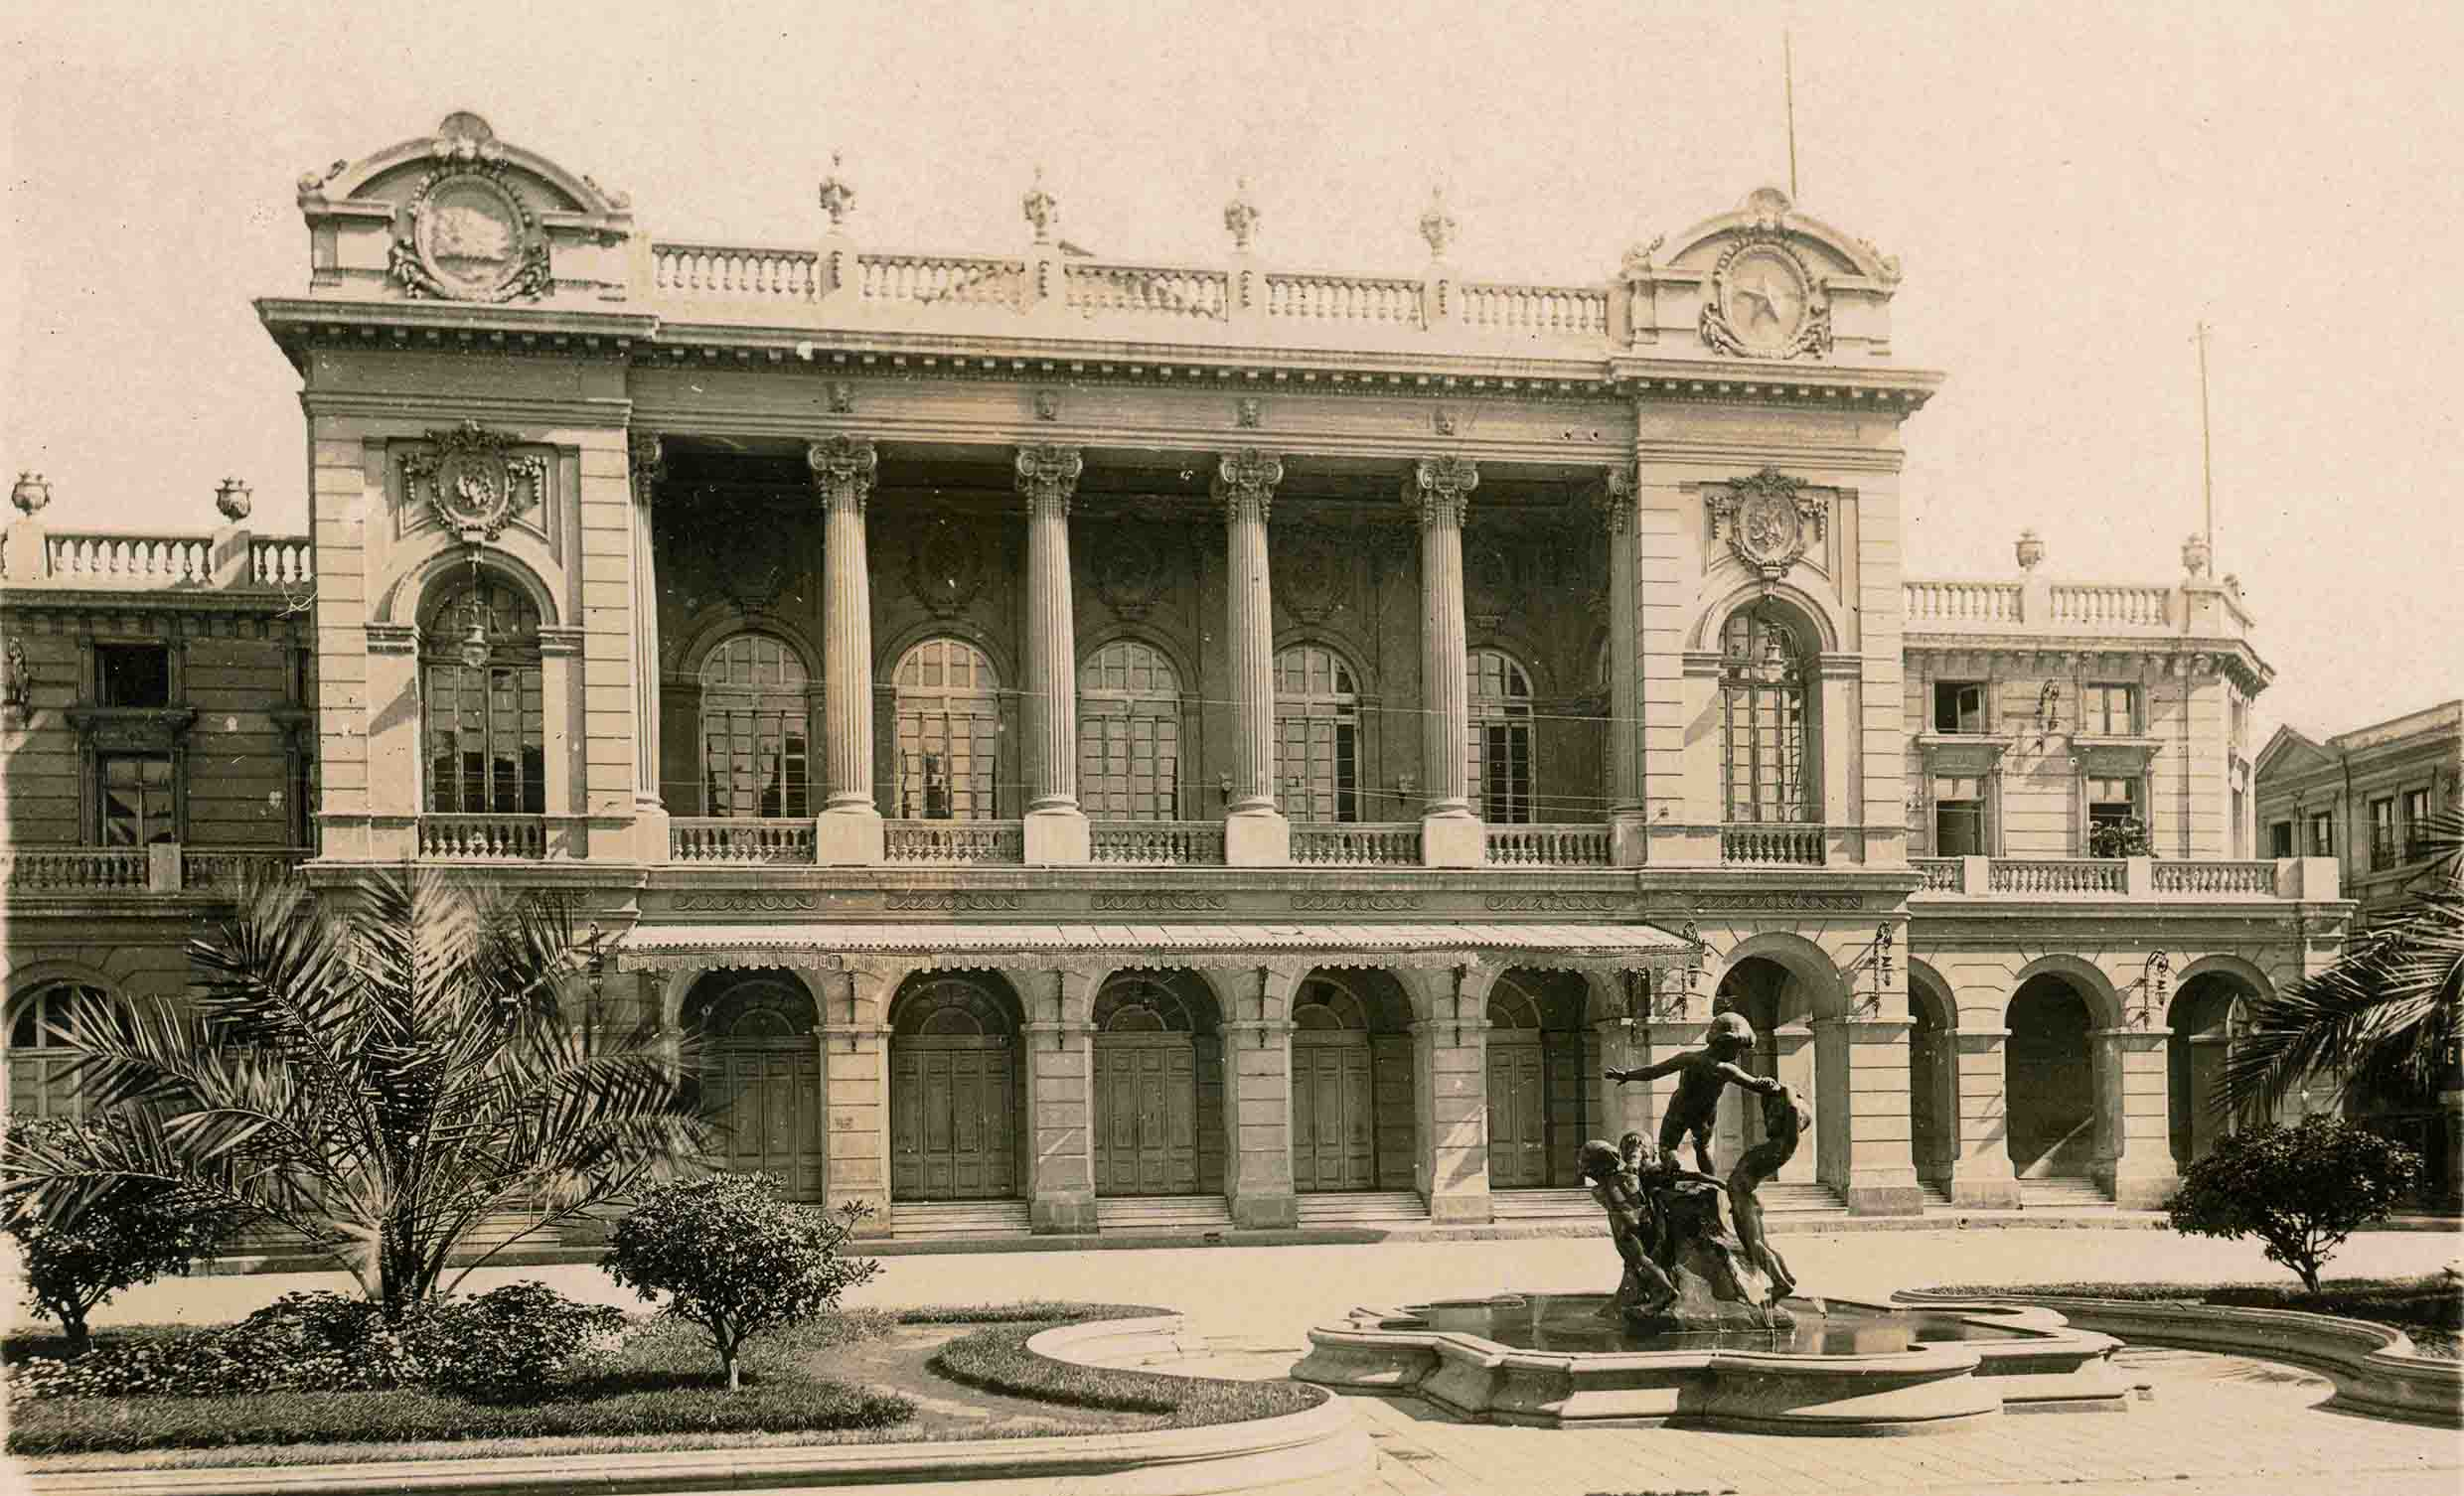 Enterreno - Fotos históricas de chile - fotos antiguas de Chile - Teatro Municipal de Santiago ca. 1930